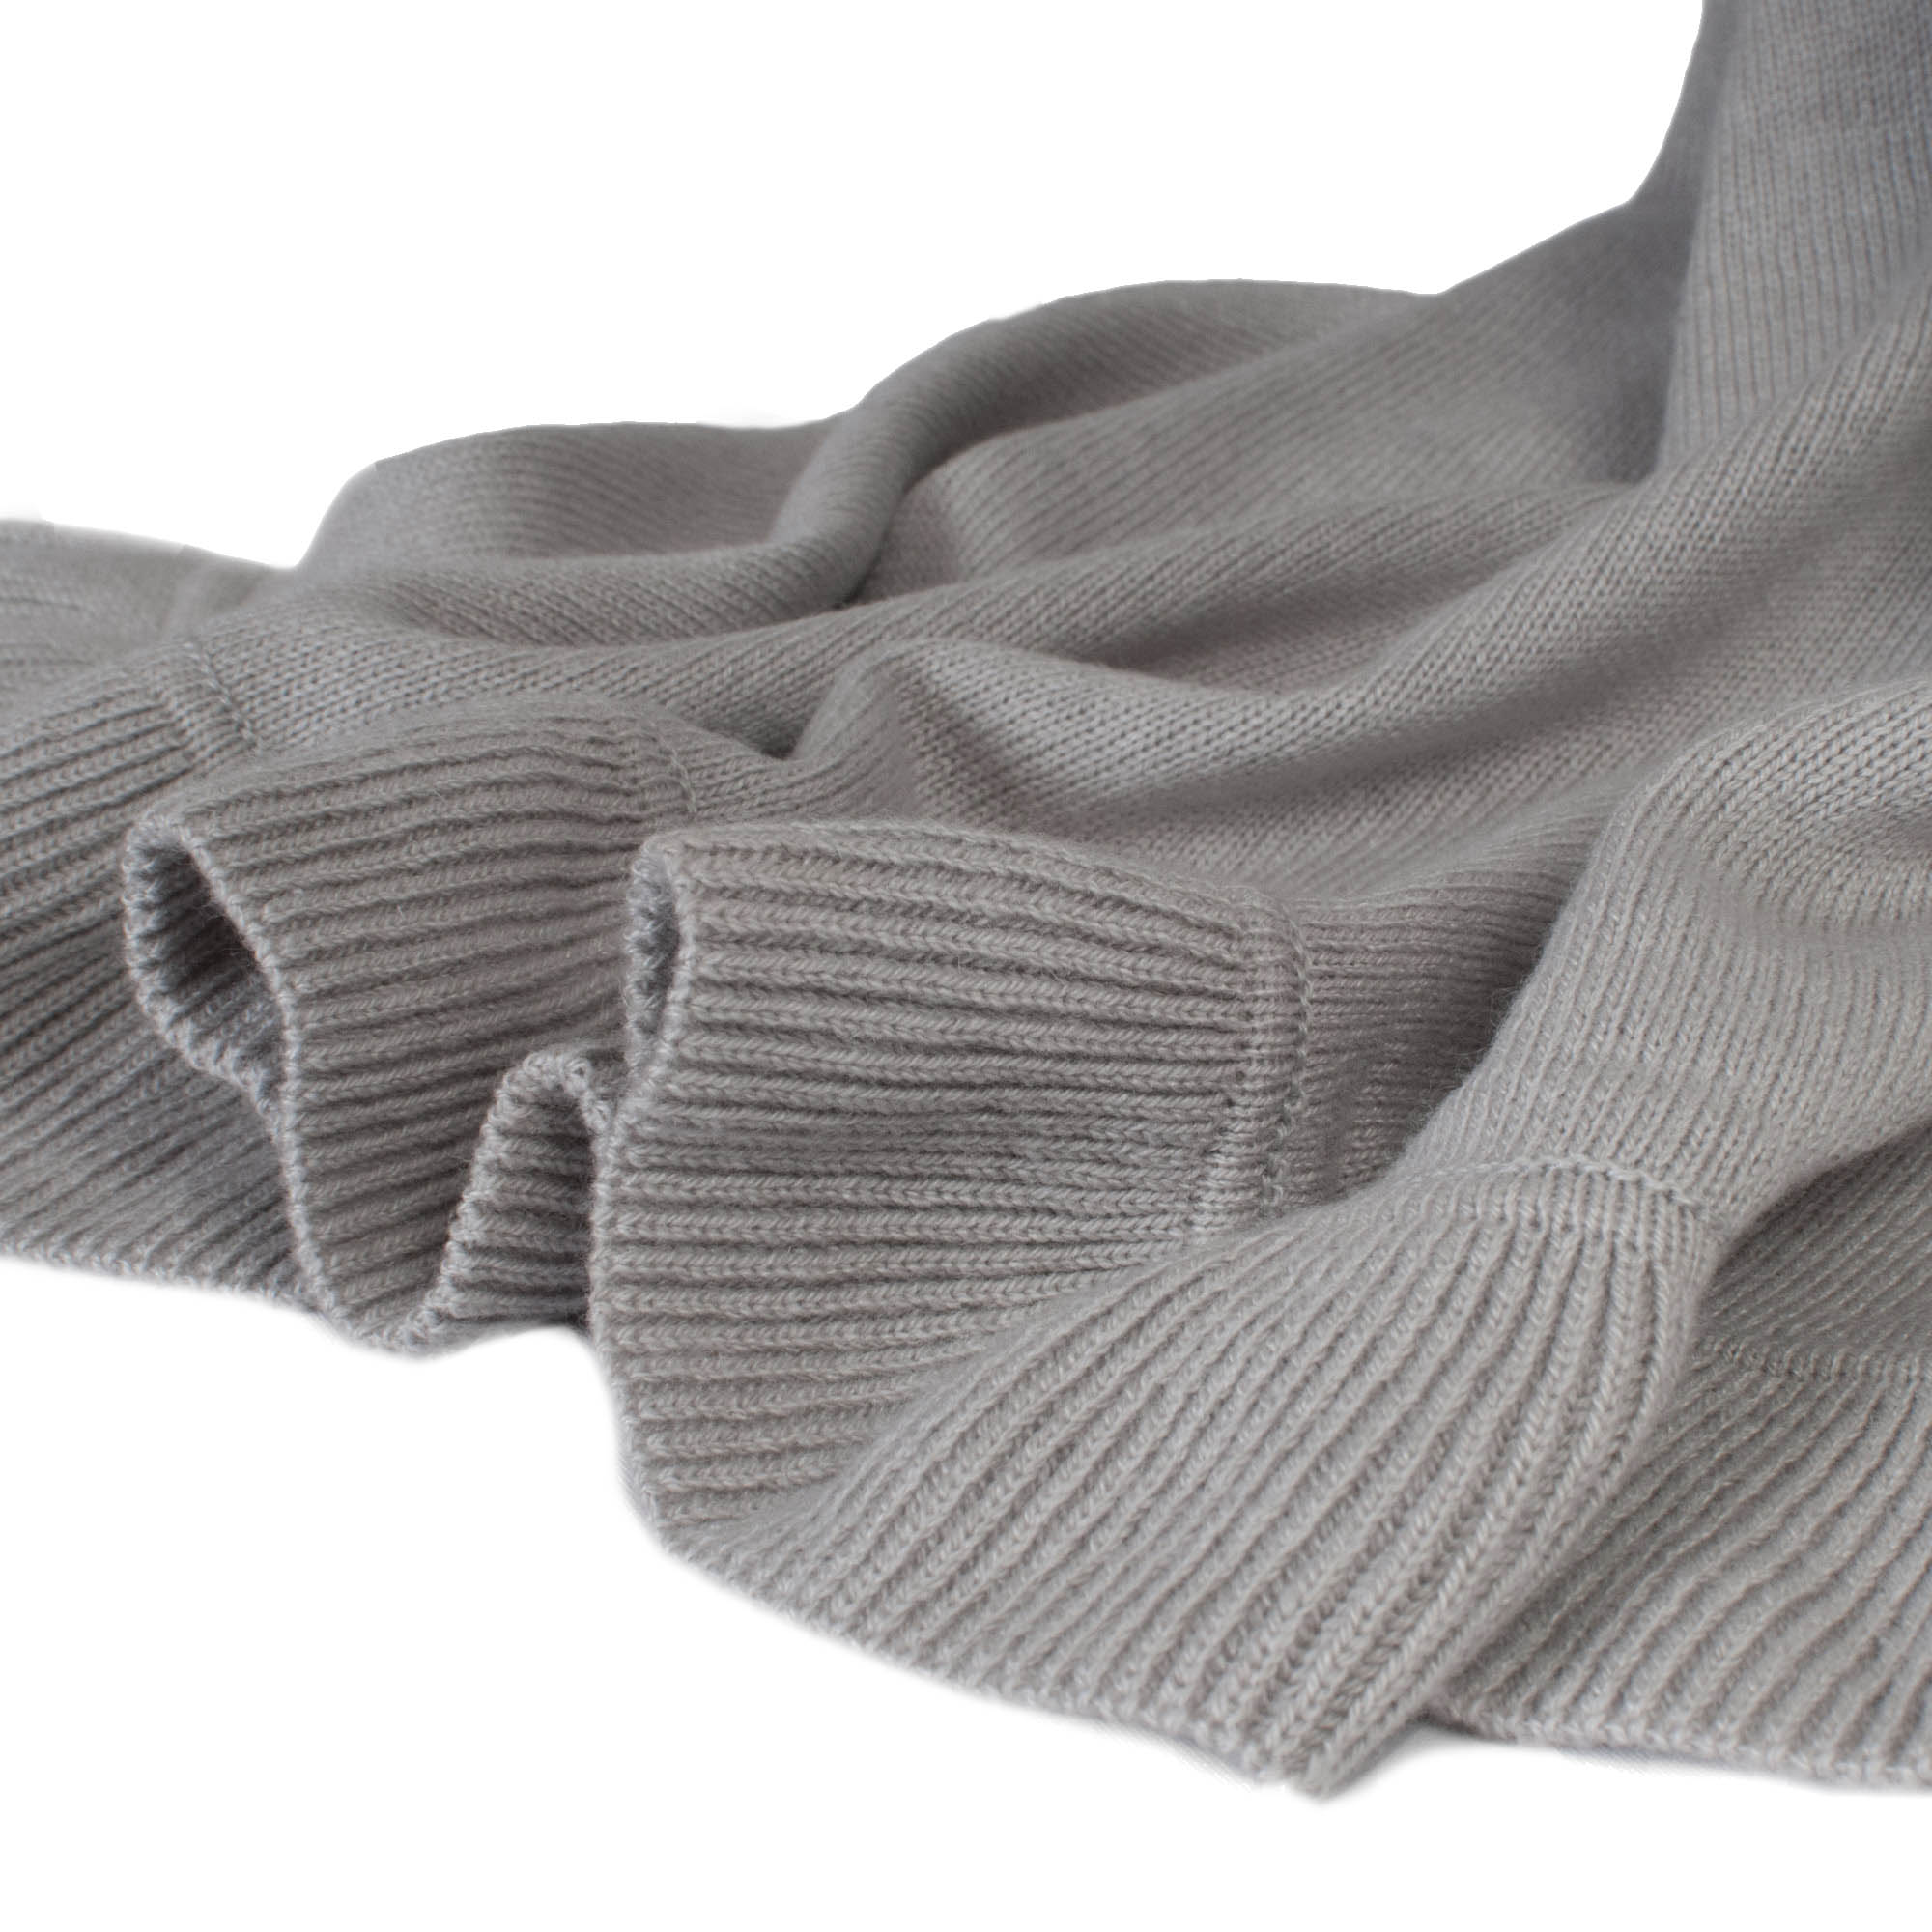 Frilled Edge Shawl - 50% Cashmere / 50% Silk - 70x200cm - Clematis Blue